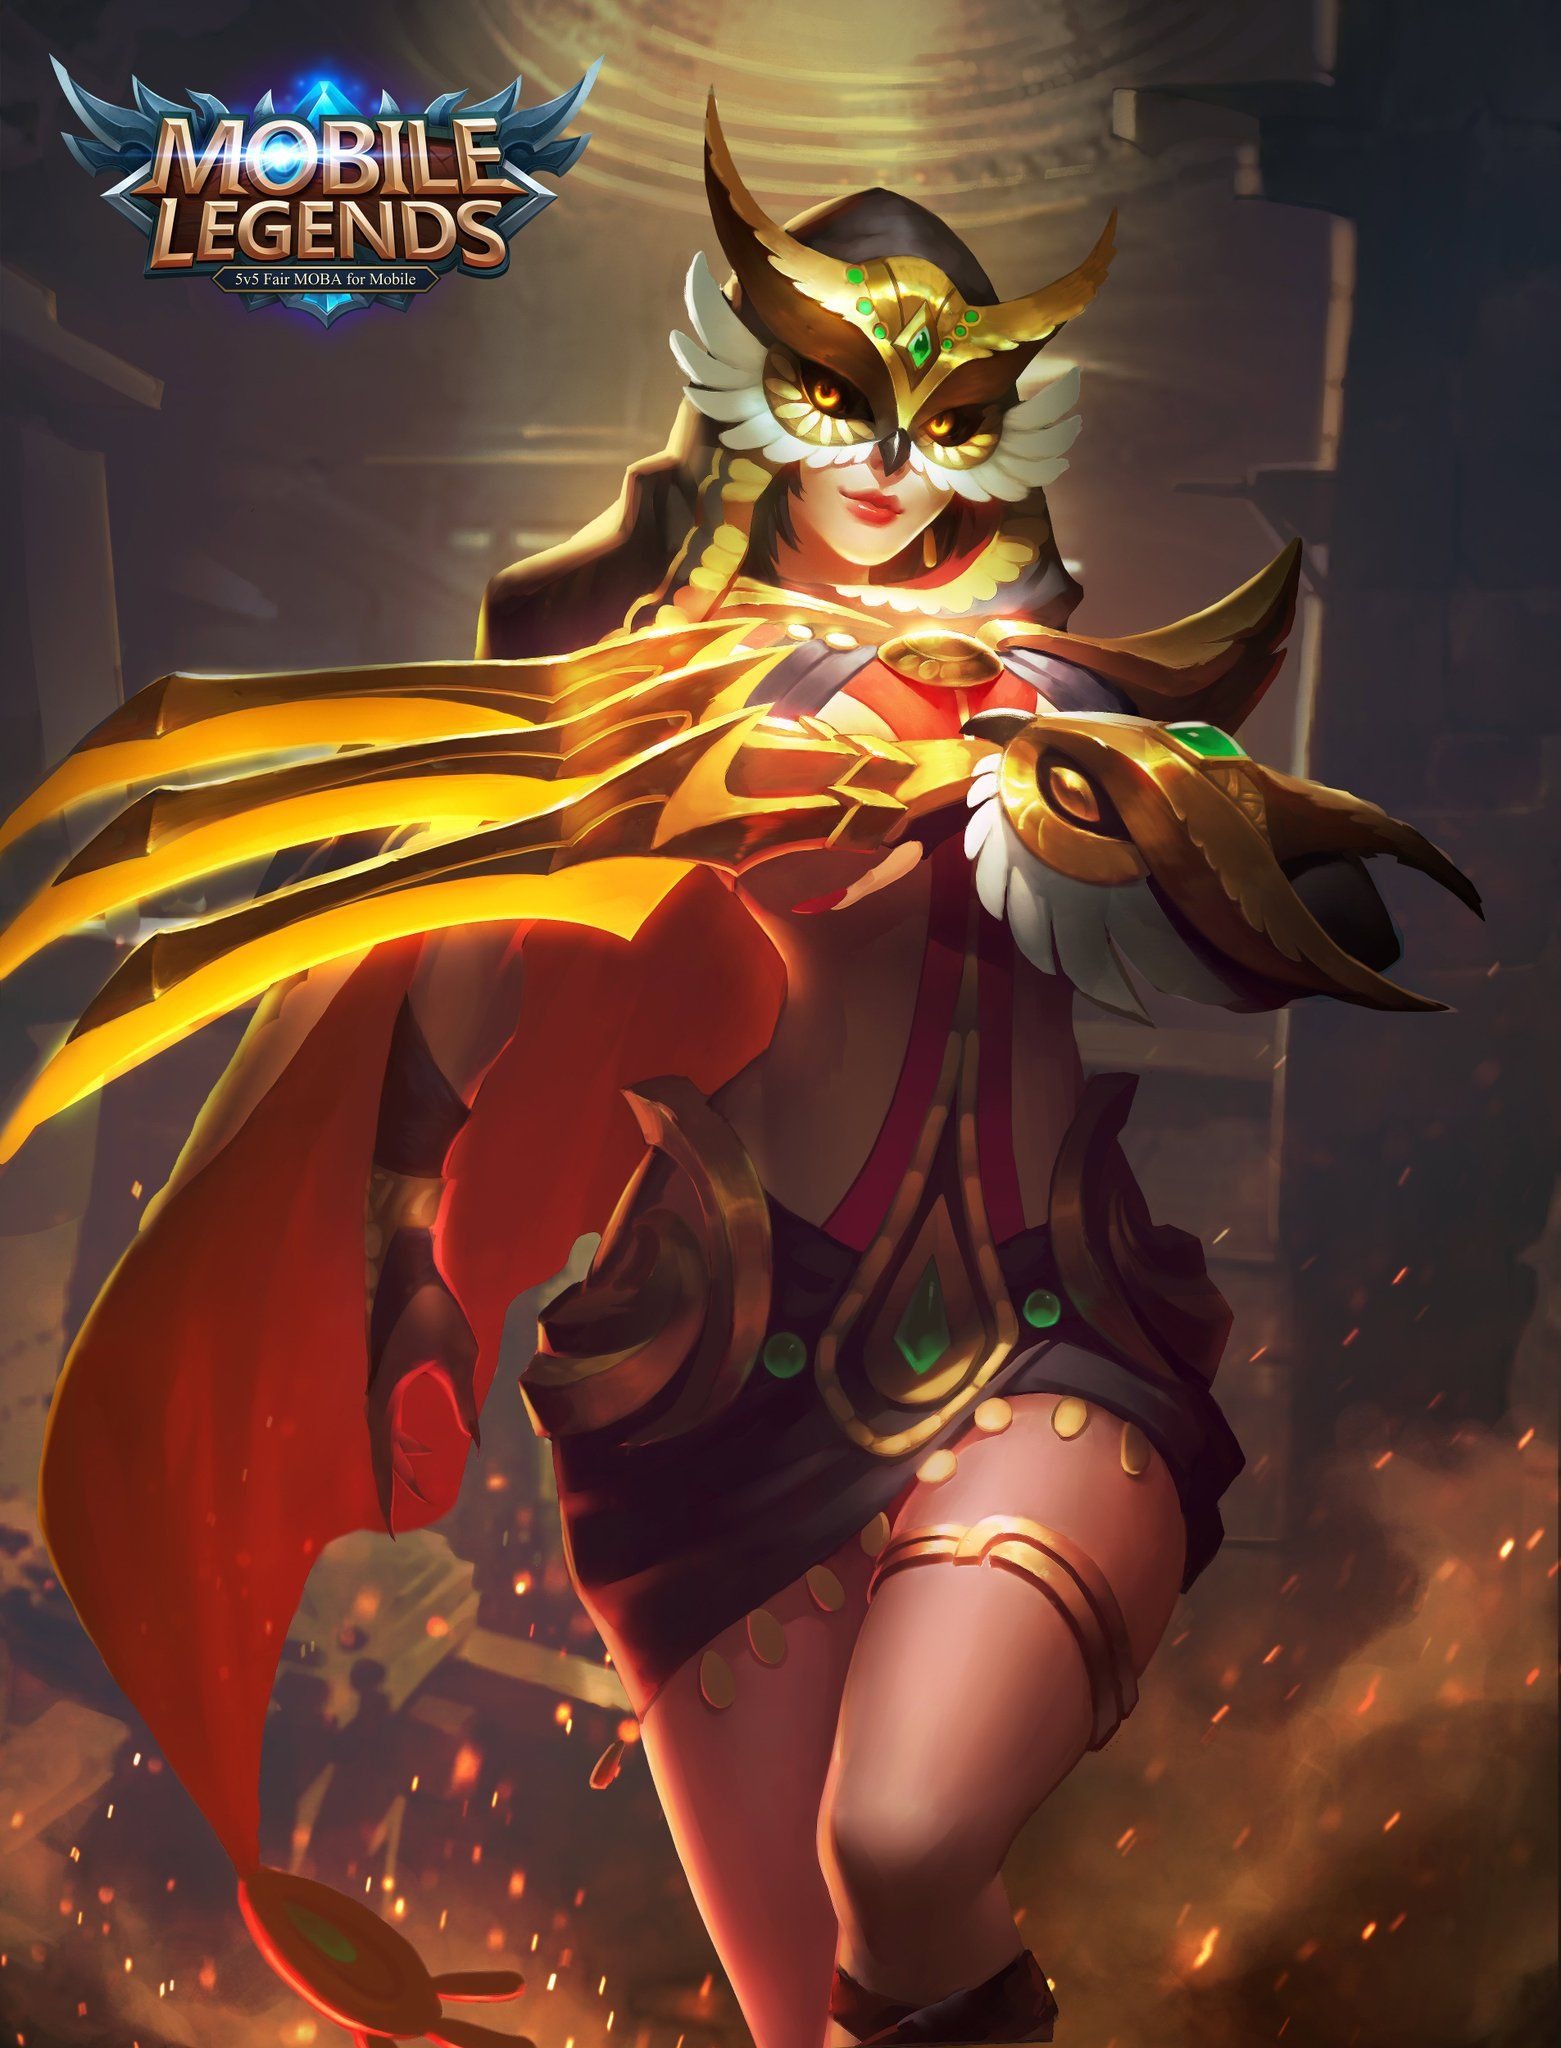 Hd wallpaper mobile legends - Wallpaper Mobile Legends Freya Dark Rose